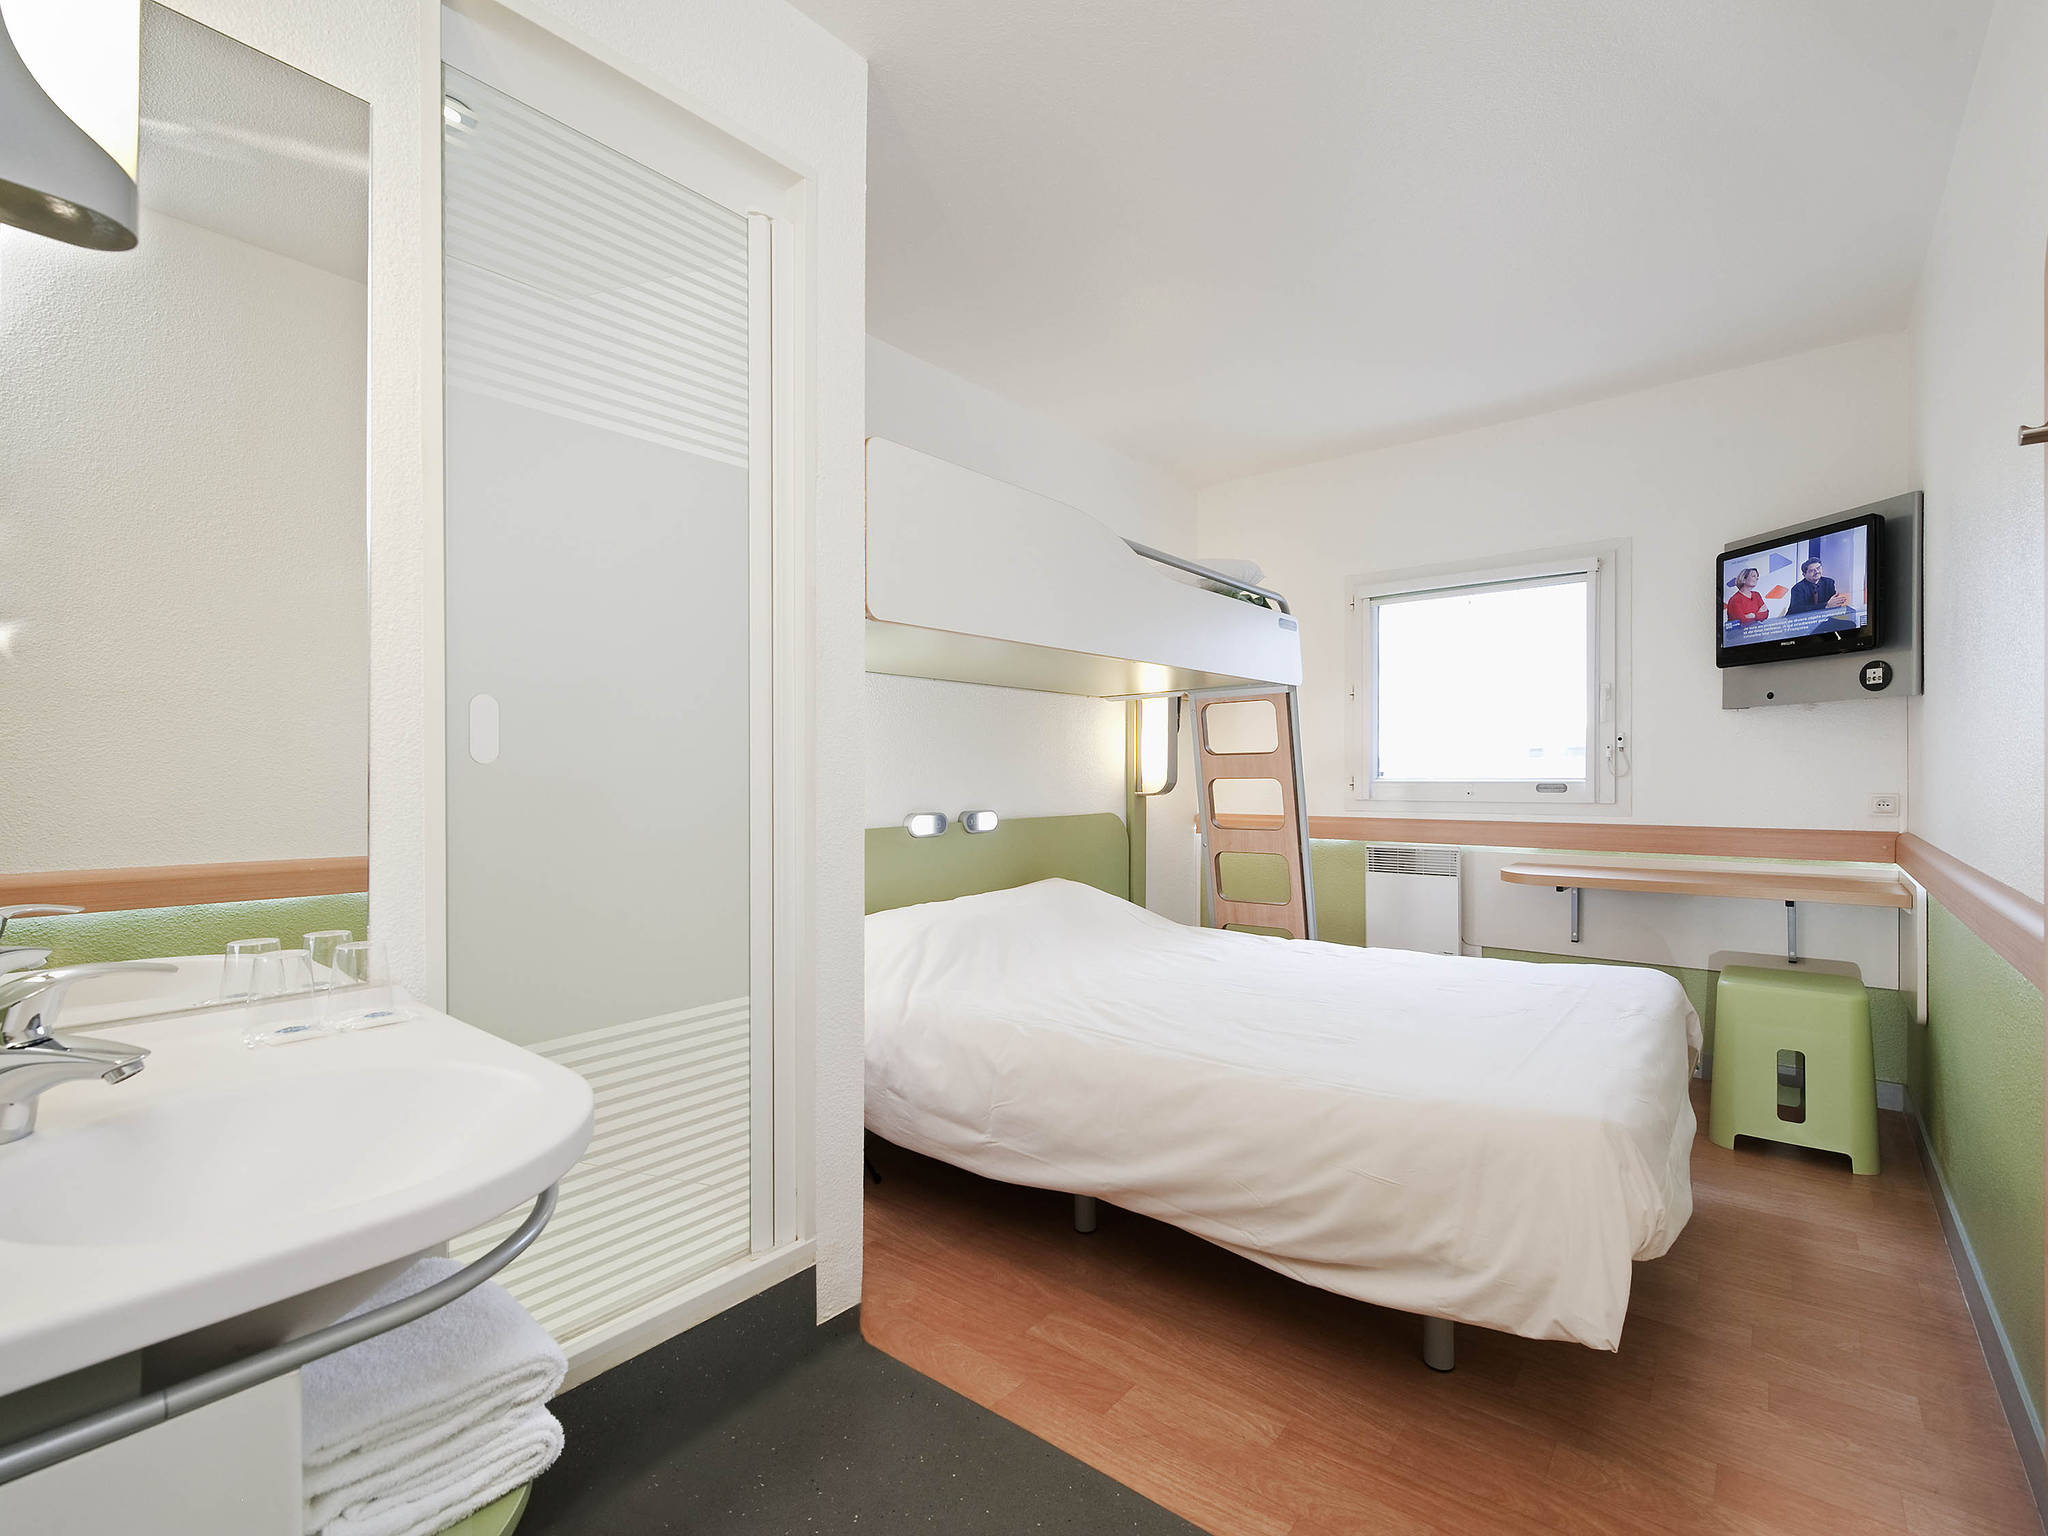 Hotel in VELIZY VILLACOUBLAY - ibis budget Vélizy 5903b5640866